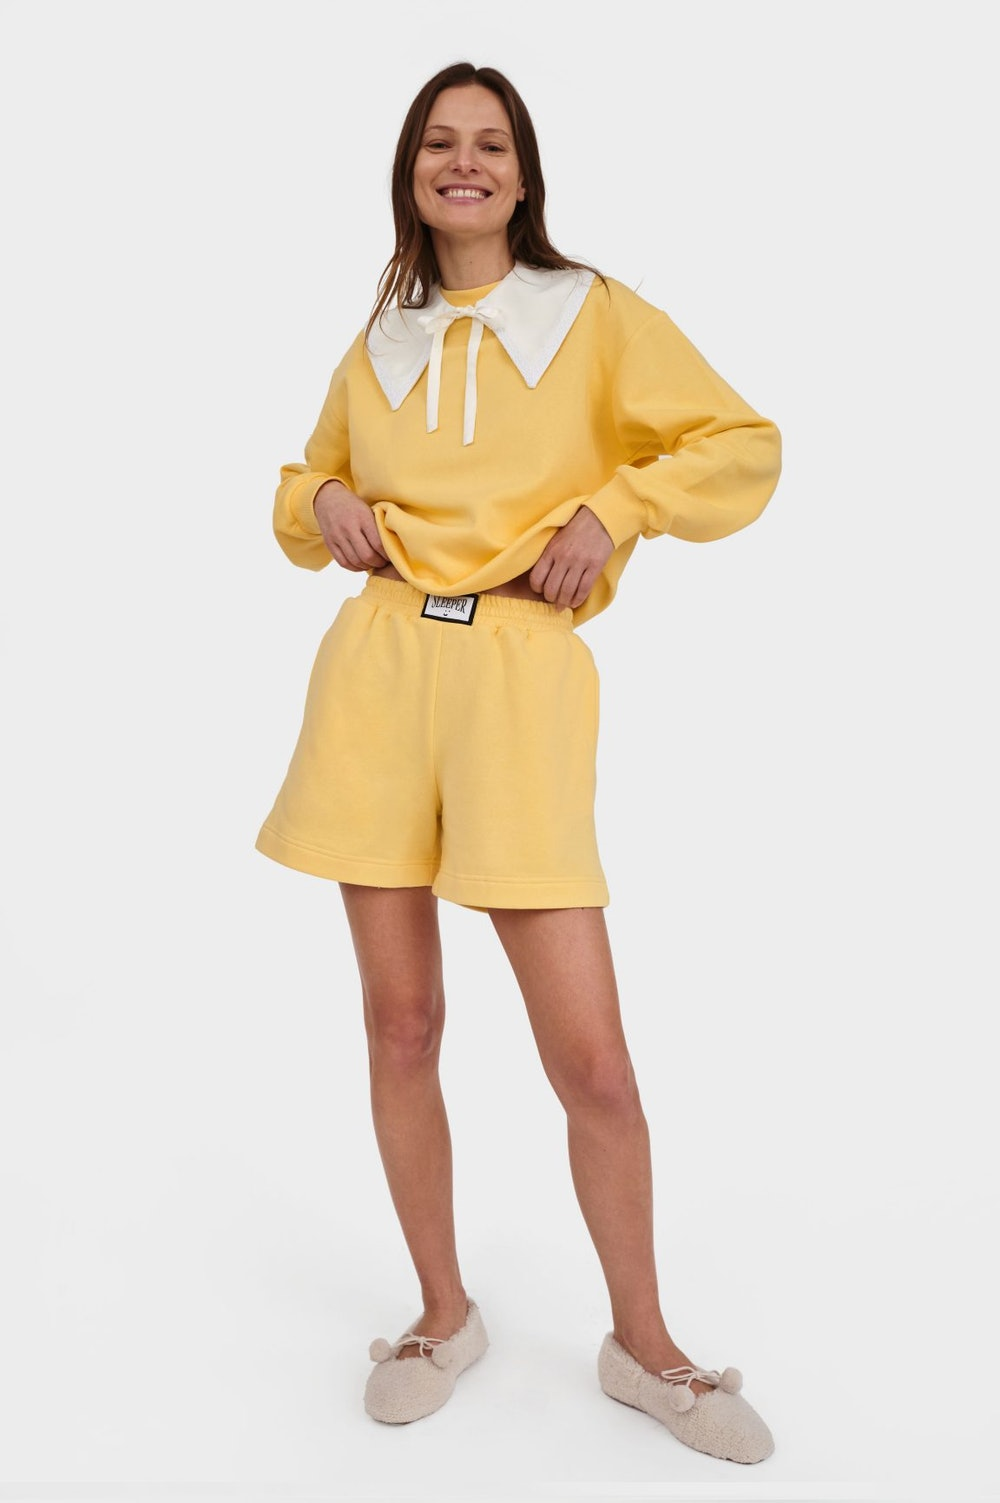 Diana Athpleasure Sweatsuit with Shorts in Yellow